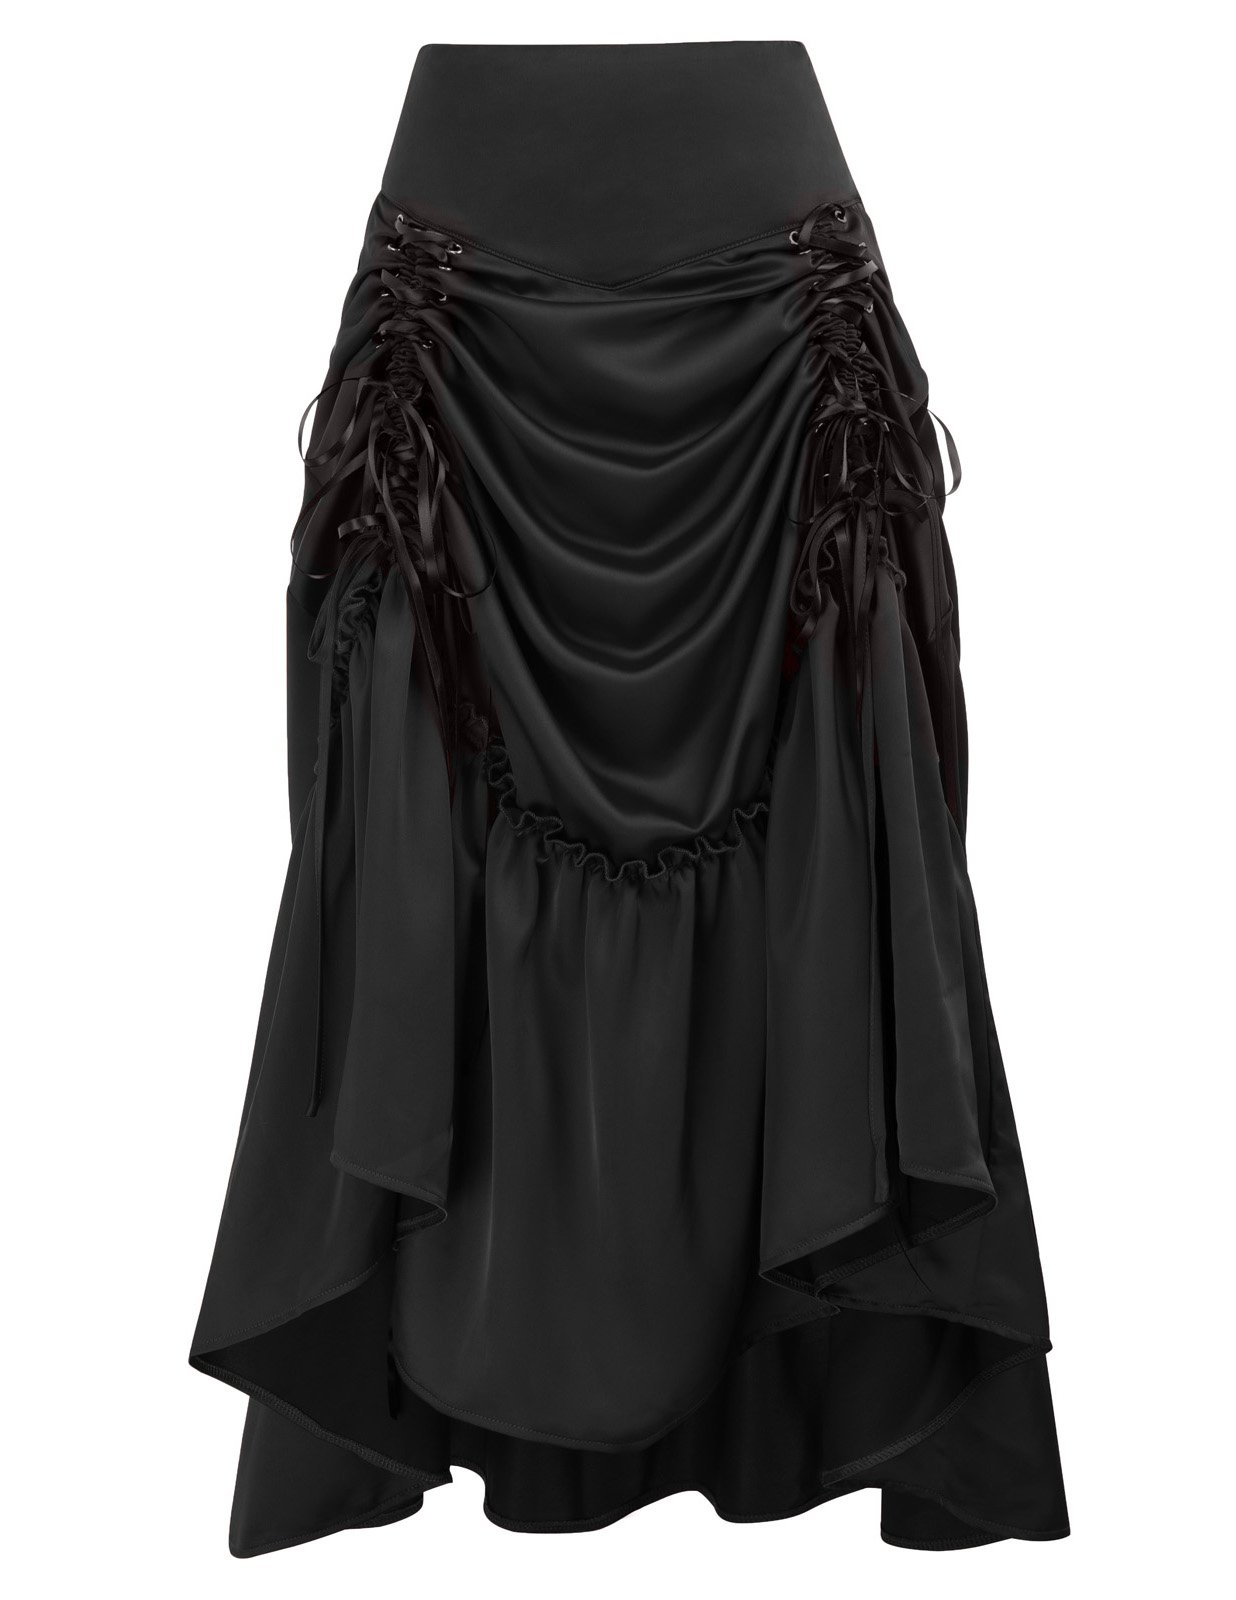 Black Steampunk Victorian Pirate Skirt Bustle Style (Medium, Black-617) by Belle Poque